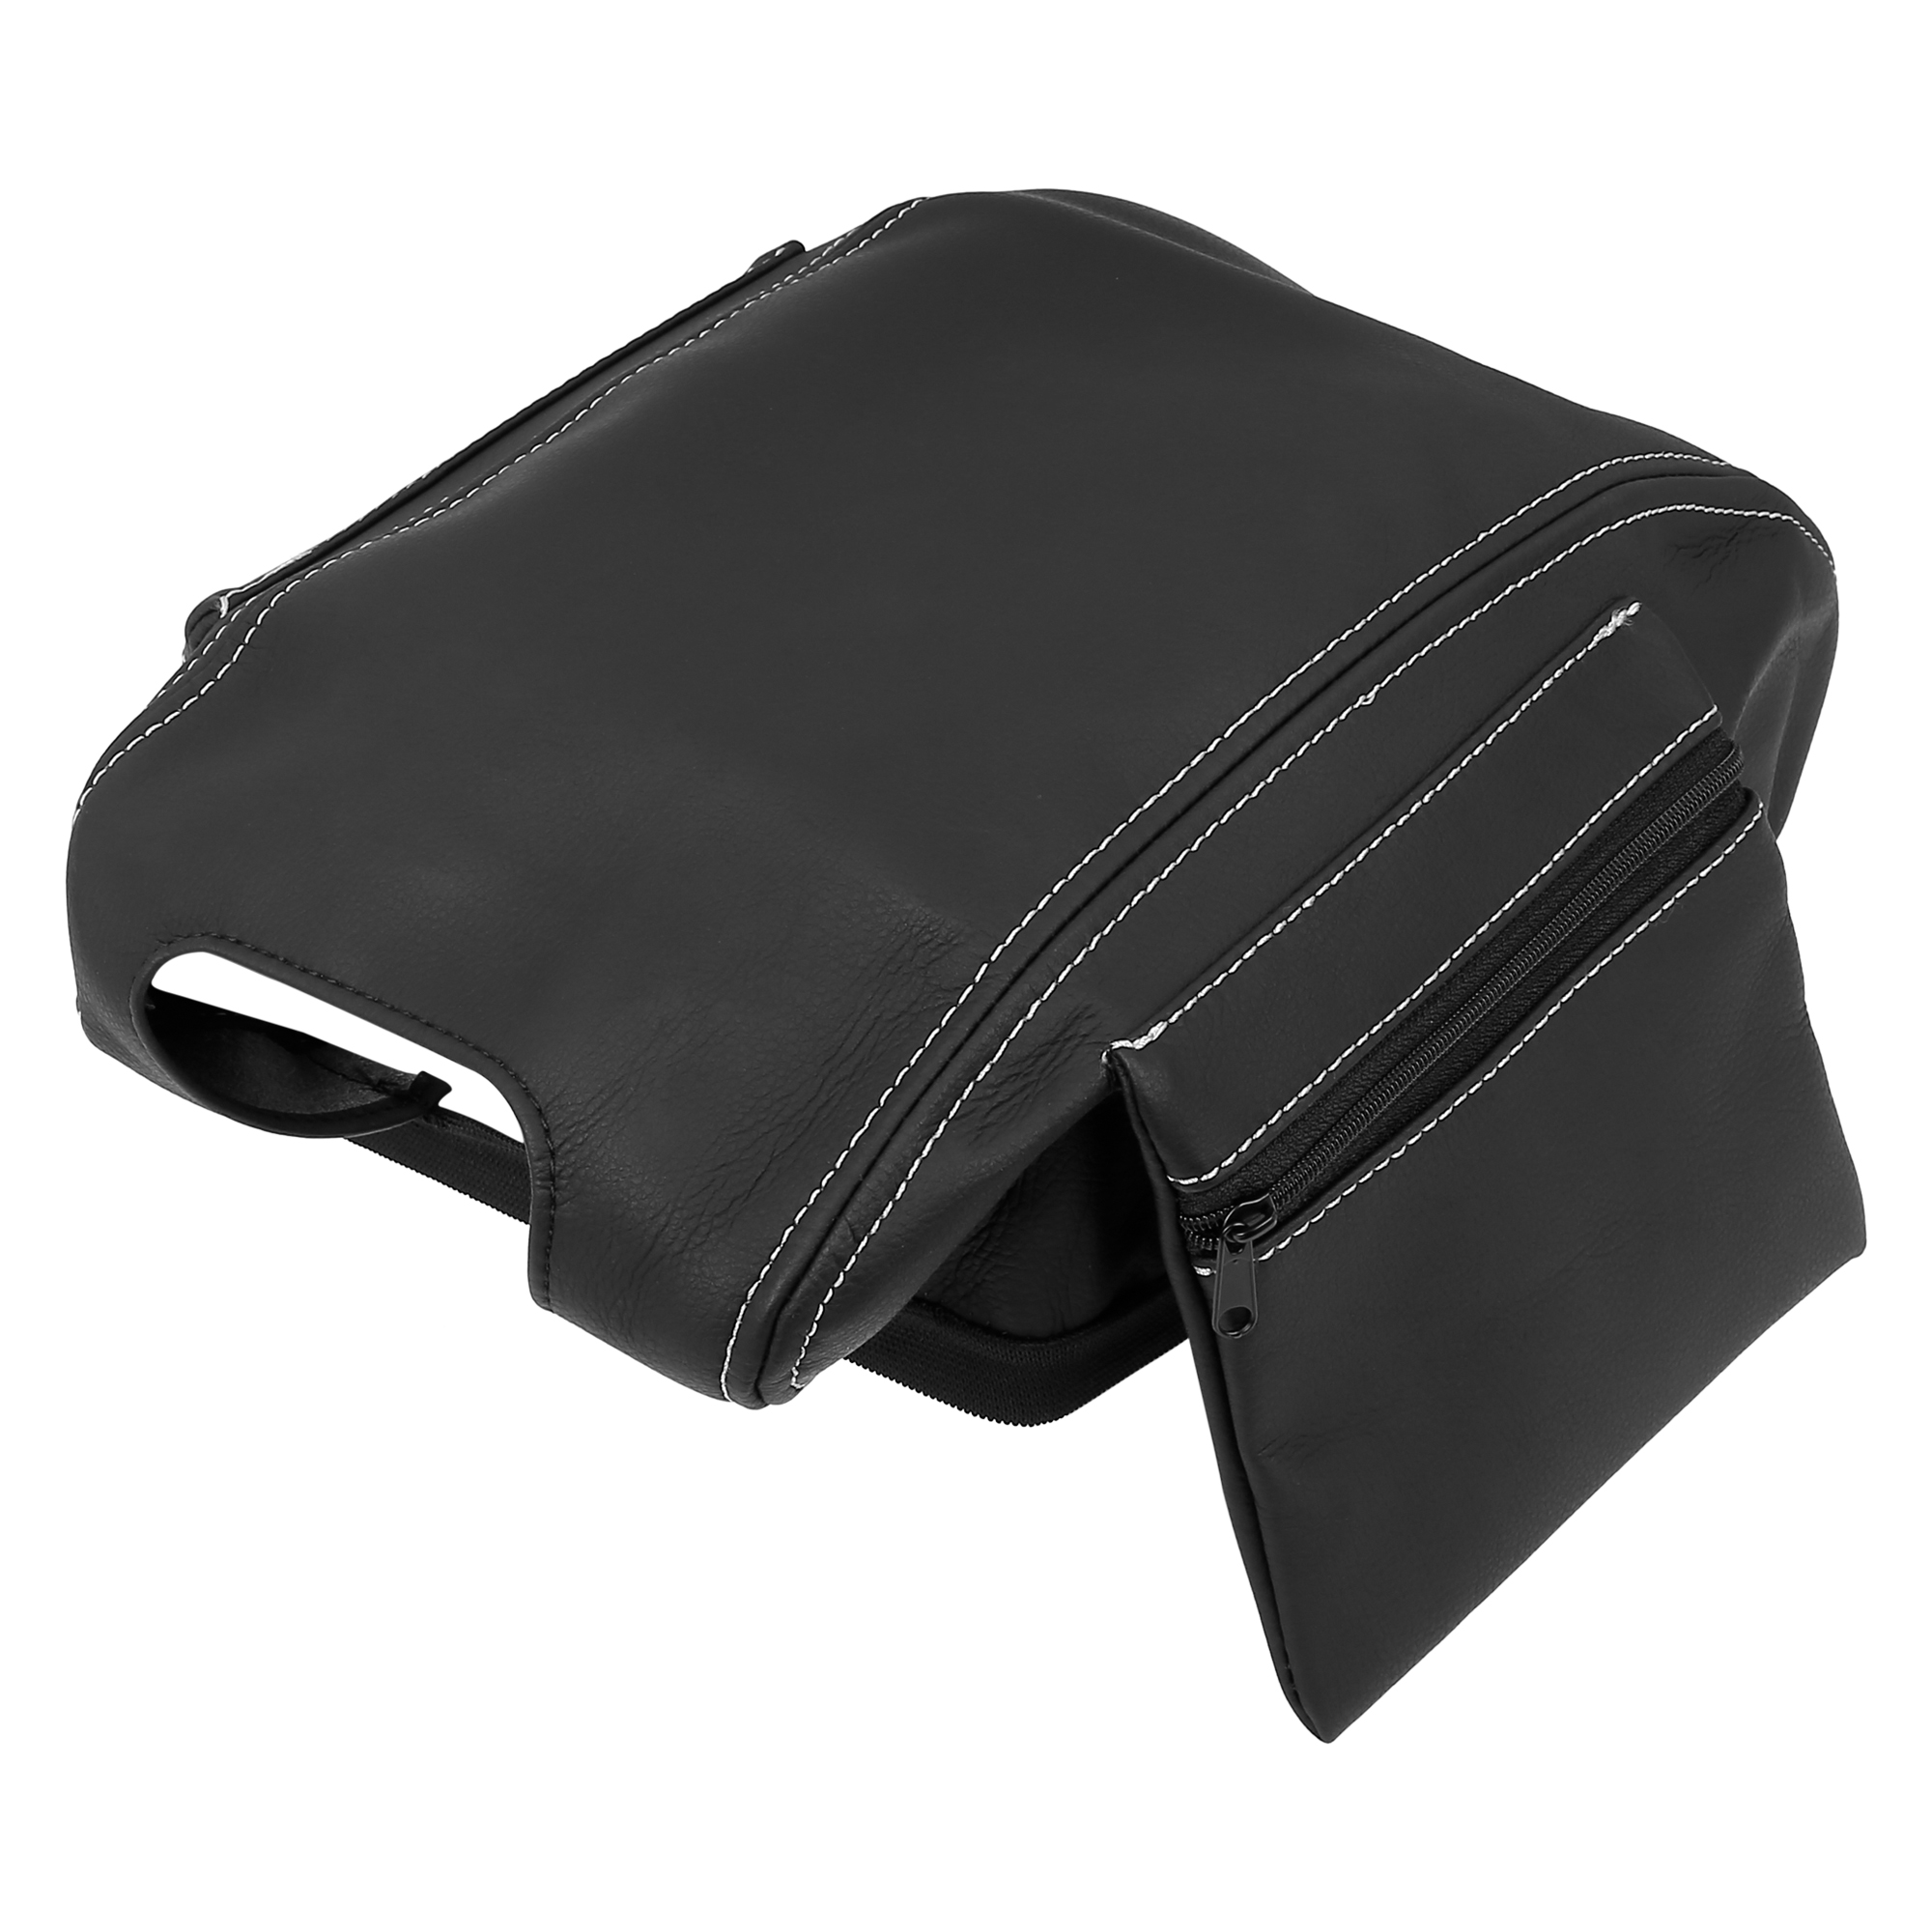 Car Center Console Lid Armrest Pad Cover Black with Bag for Jeep Wrangler 11-17